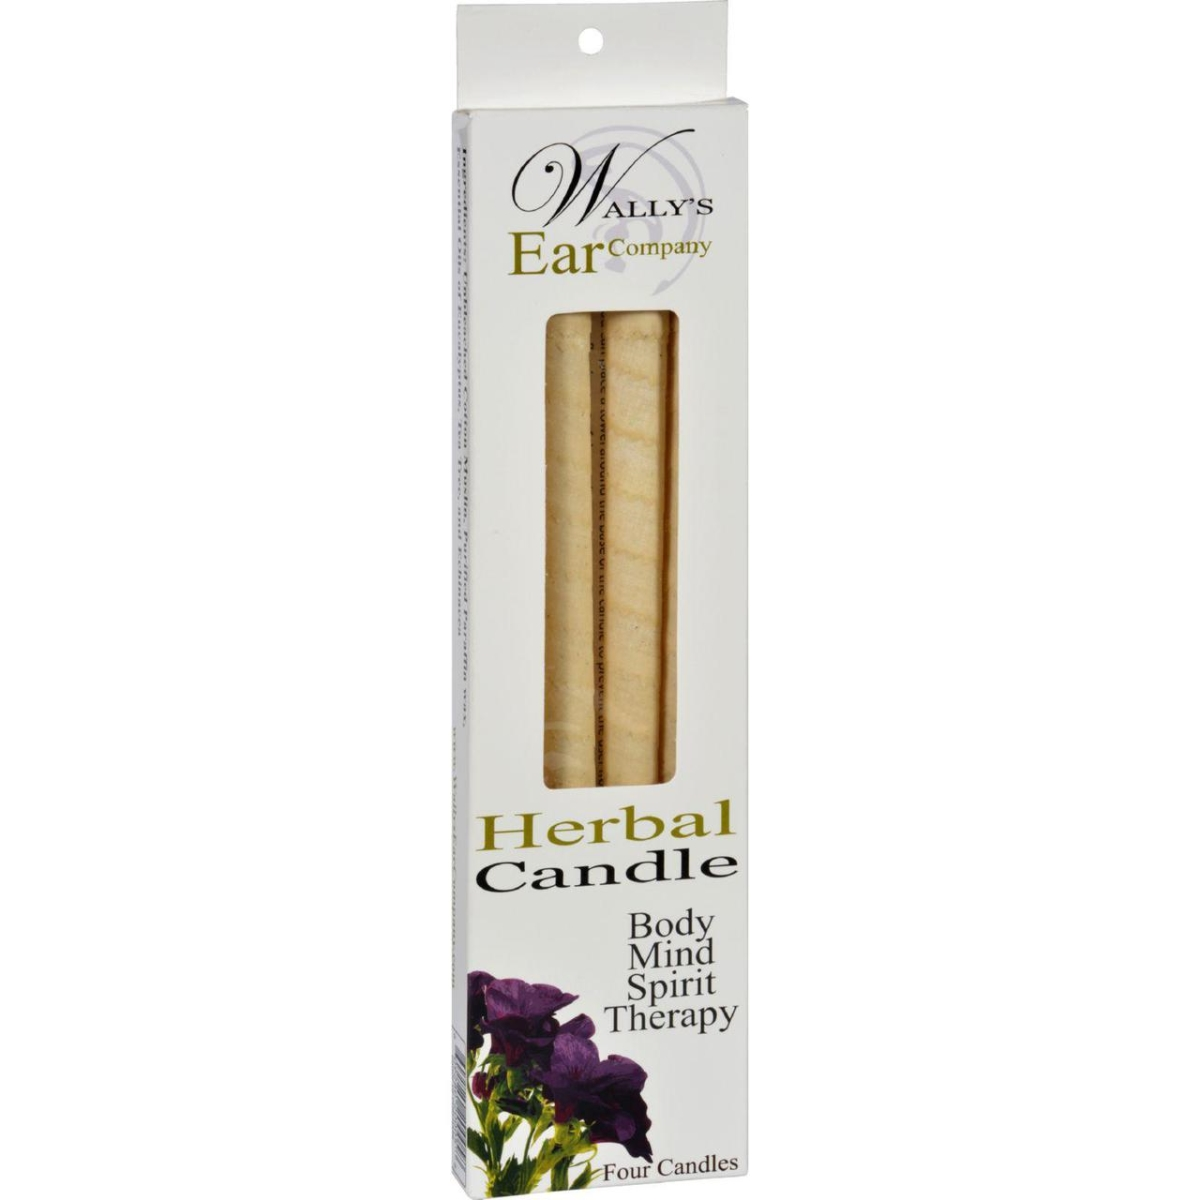 Wallys Natural Products HG1029966 Herbal Candles - 4 Candles